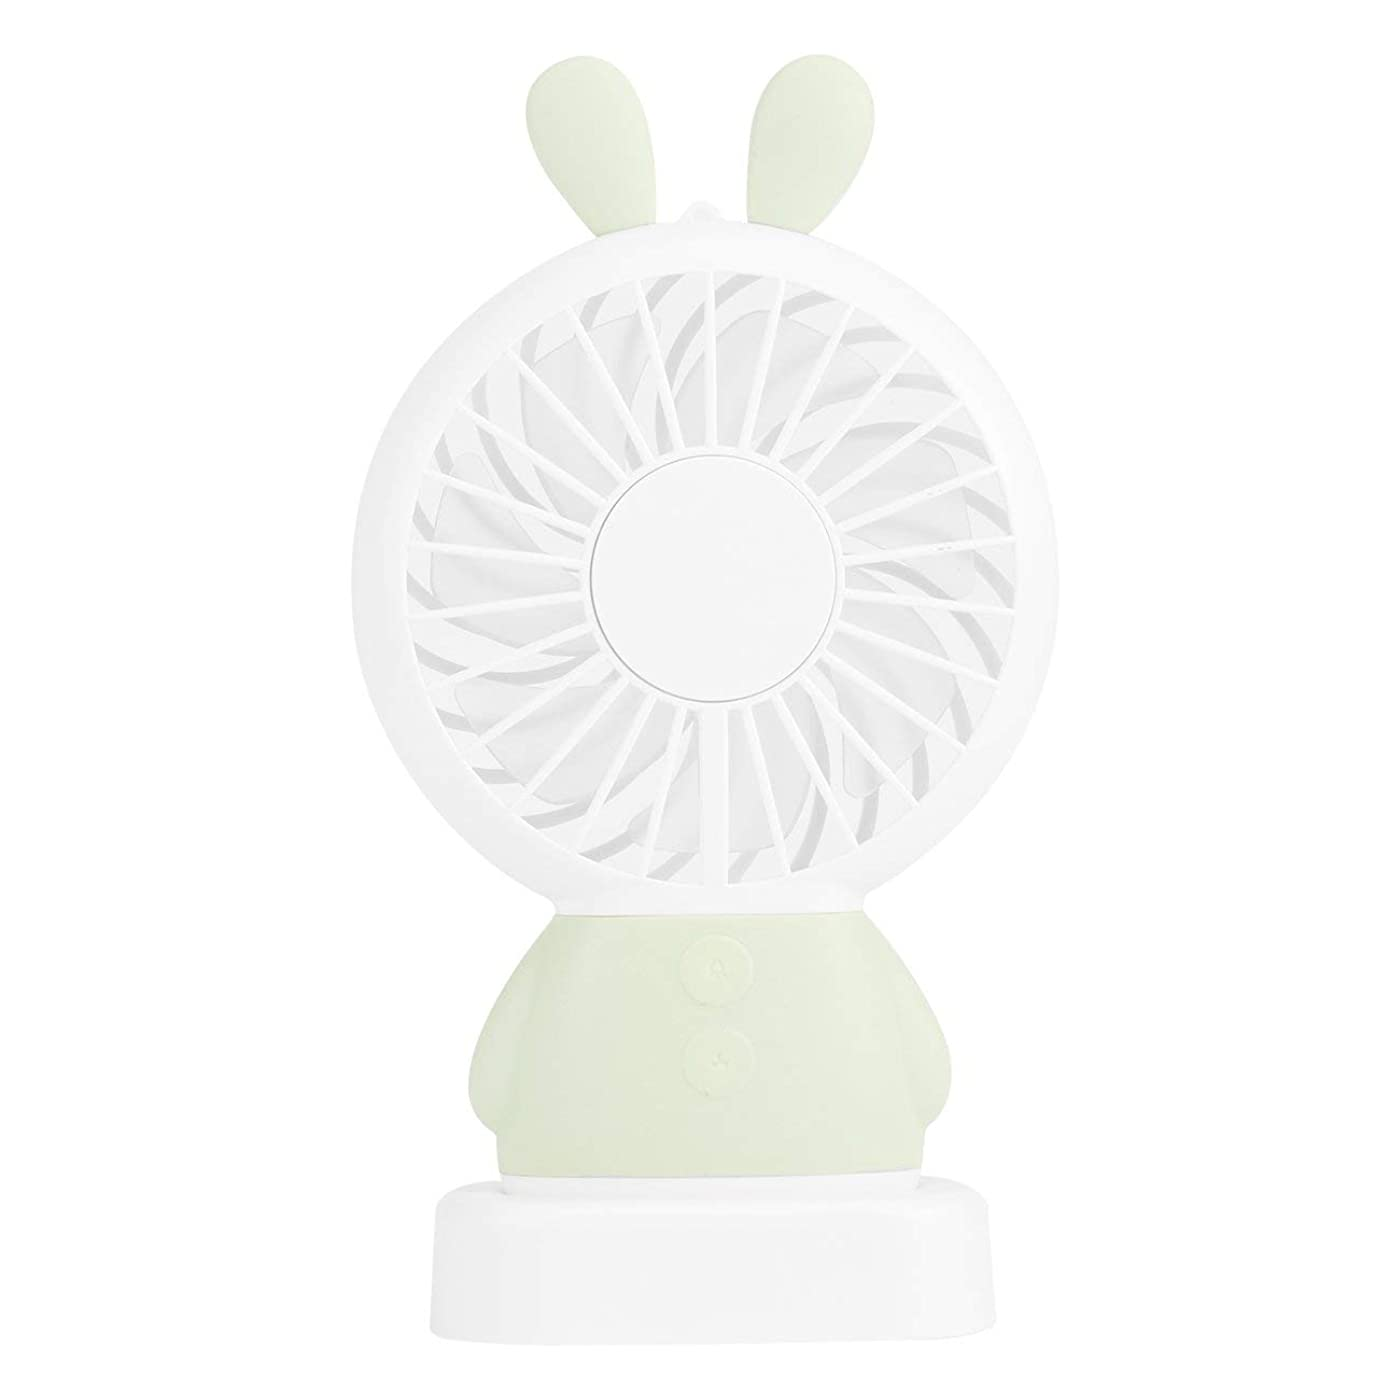 Liobaba Mini Handheld USB Misting Fan with Personal Cooling Mist Humidifier Rechargeable Portable Mini Misting Cooling Fan for Home Office and Travel